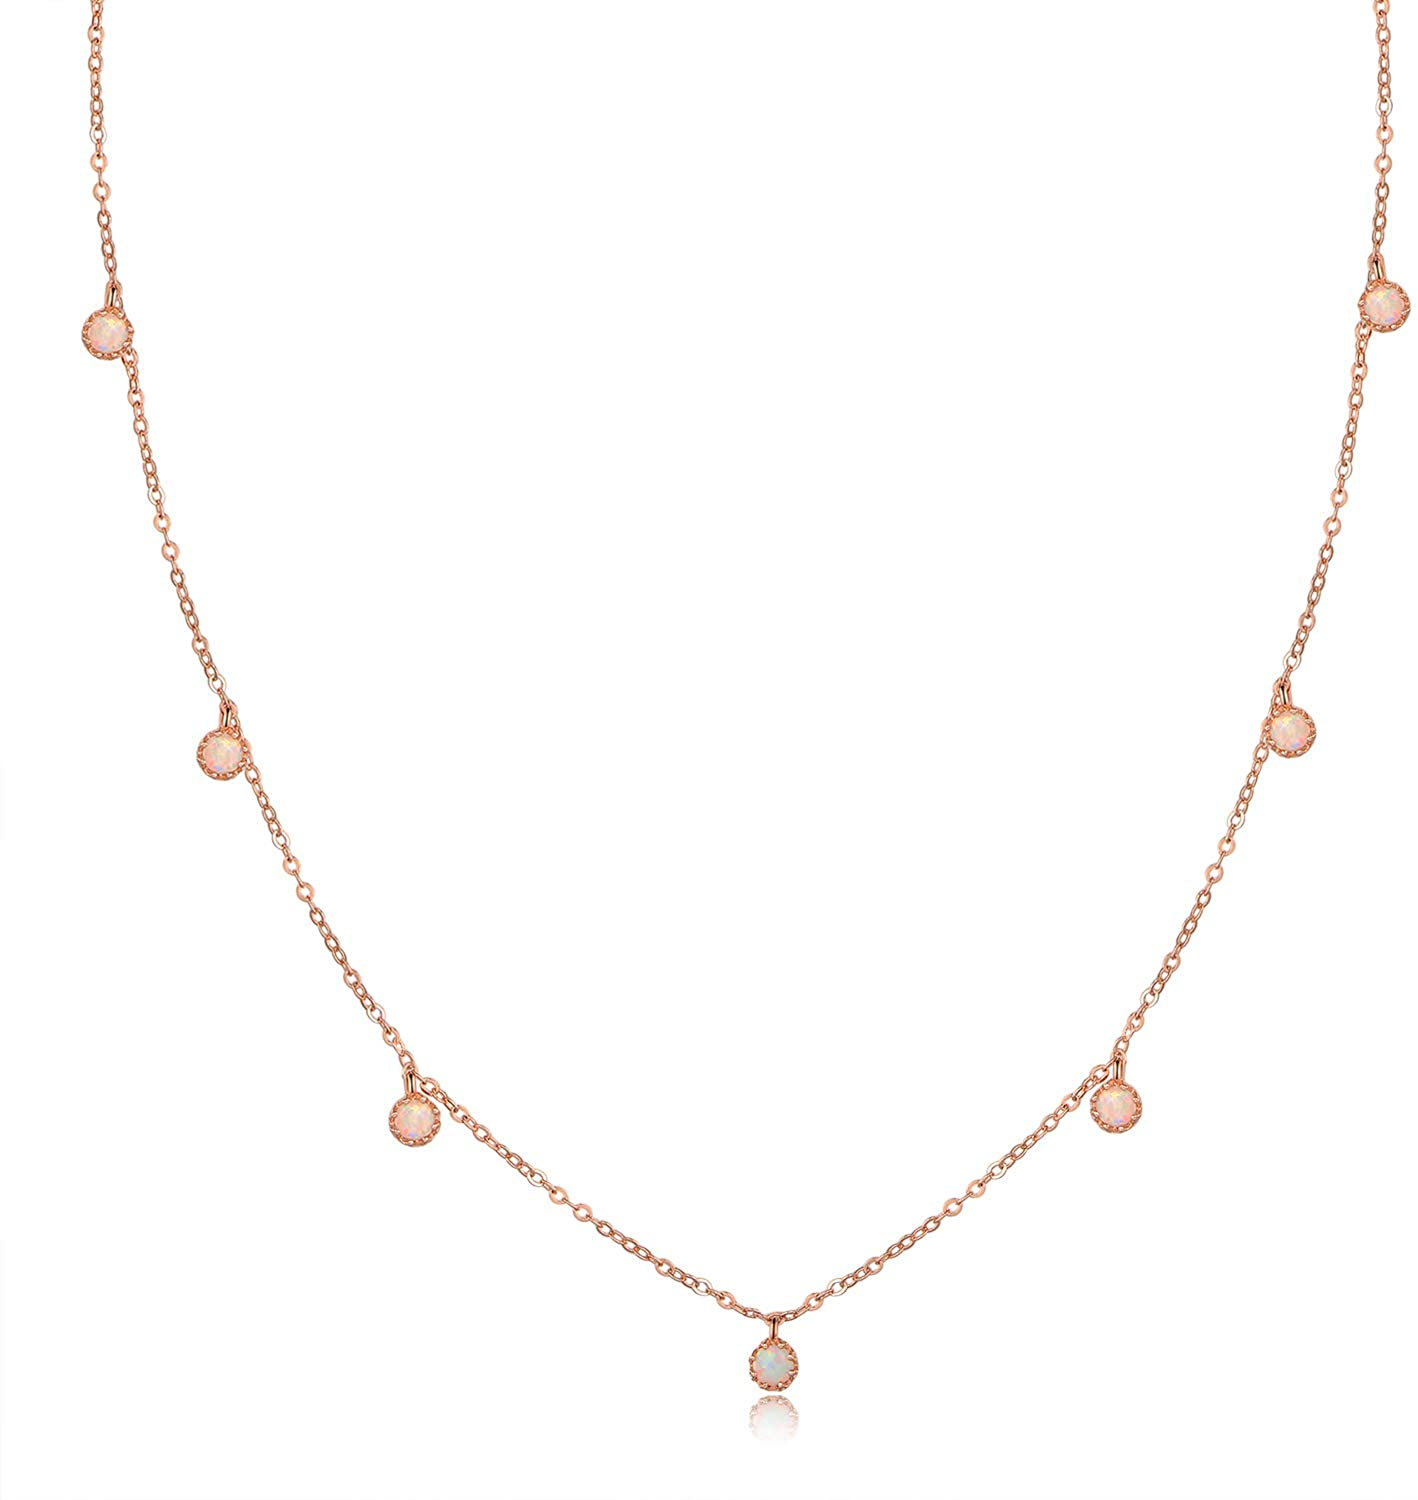 Barzel 18K White Gold & 18K Rose Gold with Created Fire Opal Necklaces